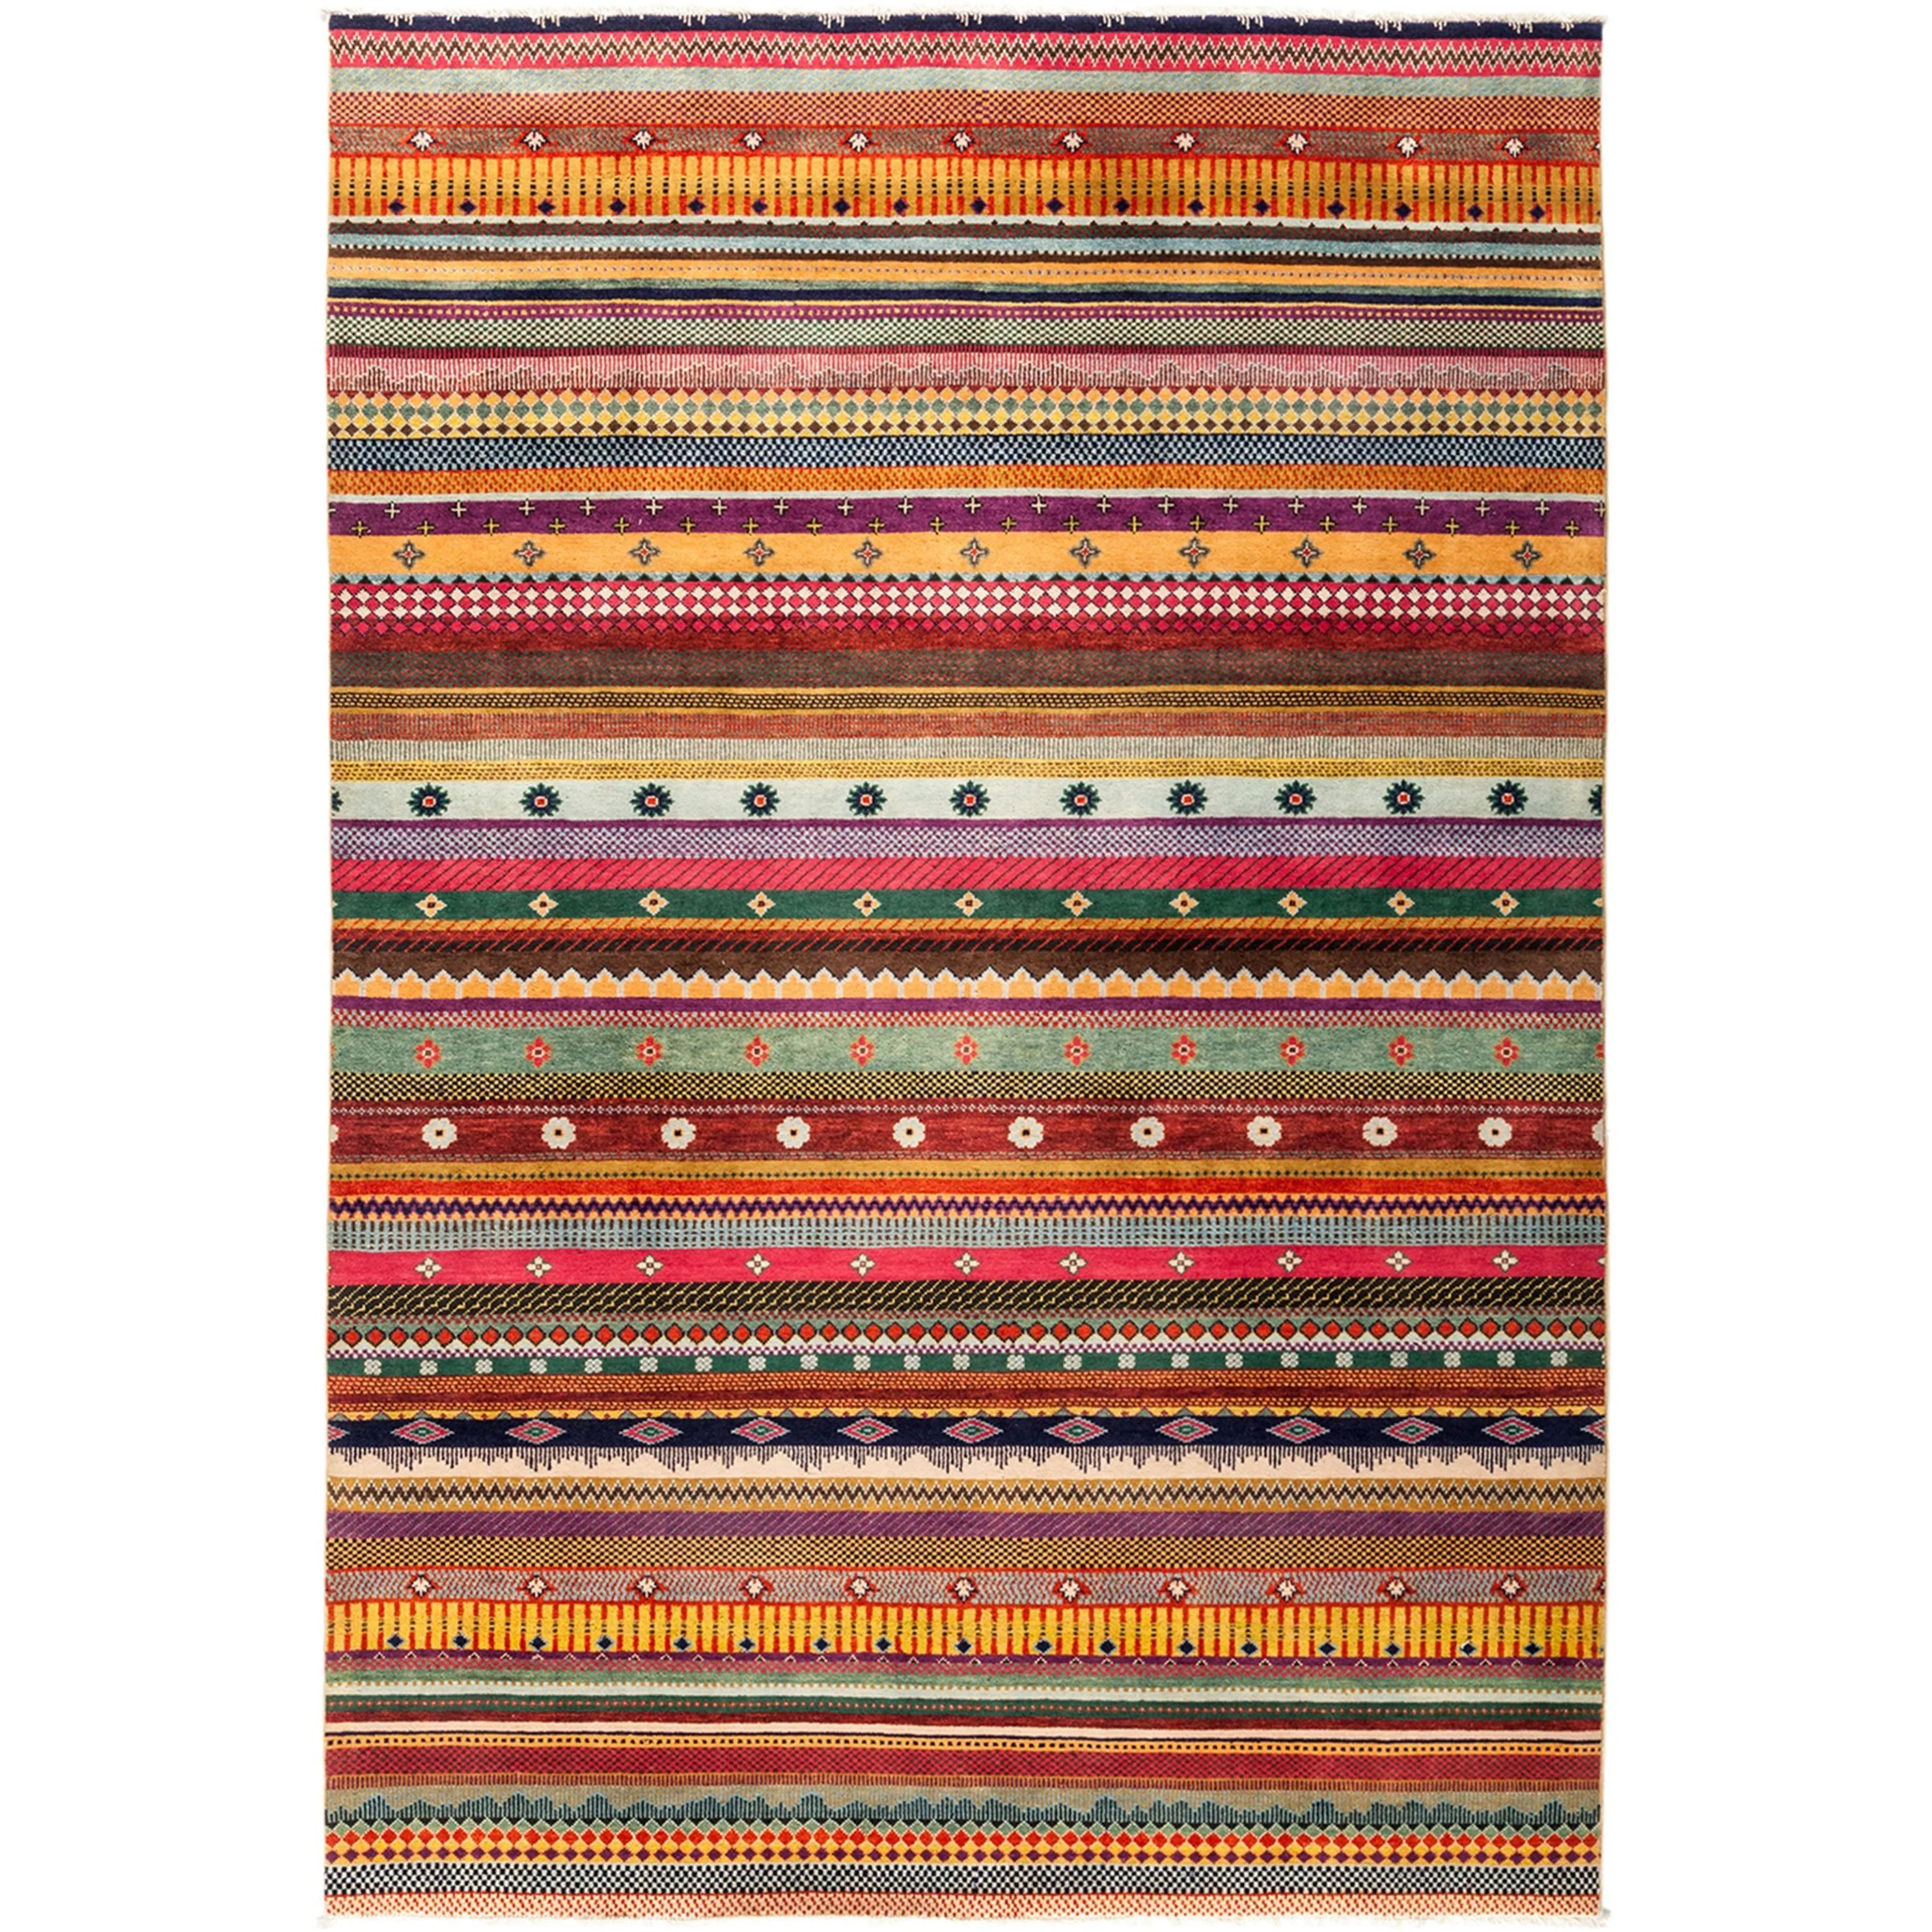 Wazirut Hand Knotted Area Rug - Multi